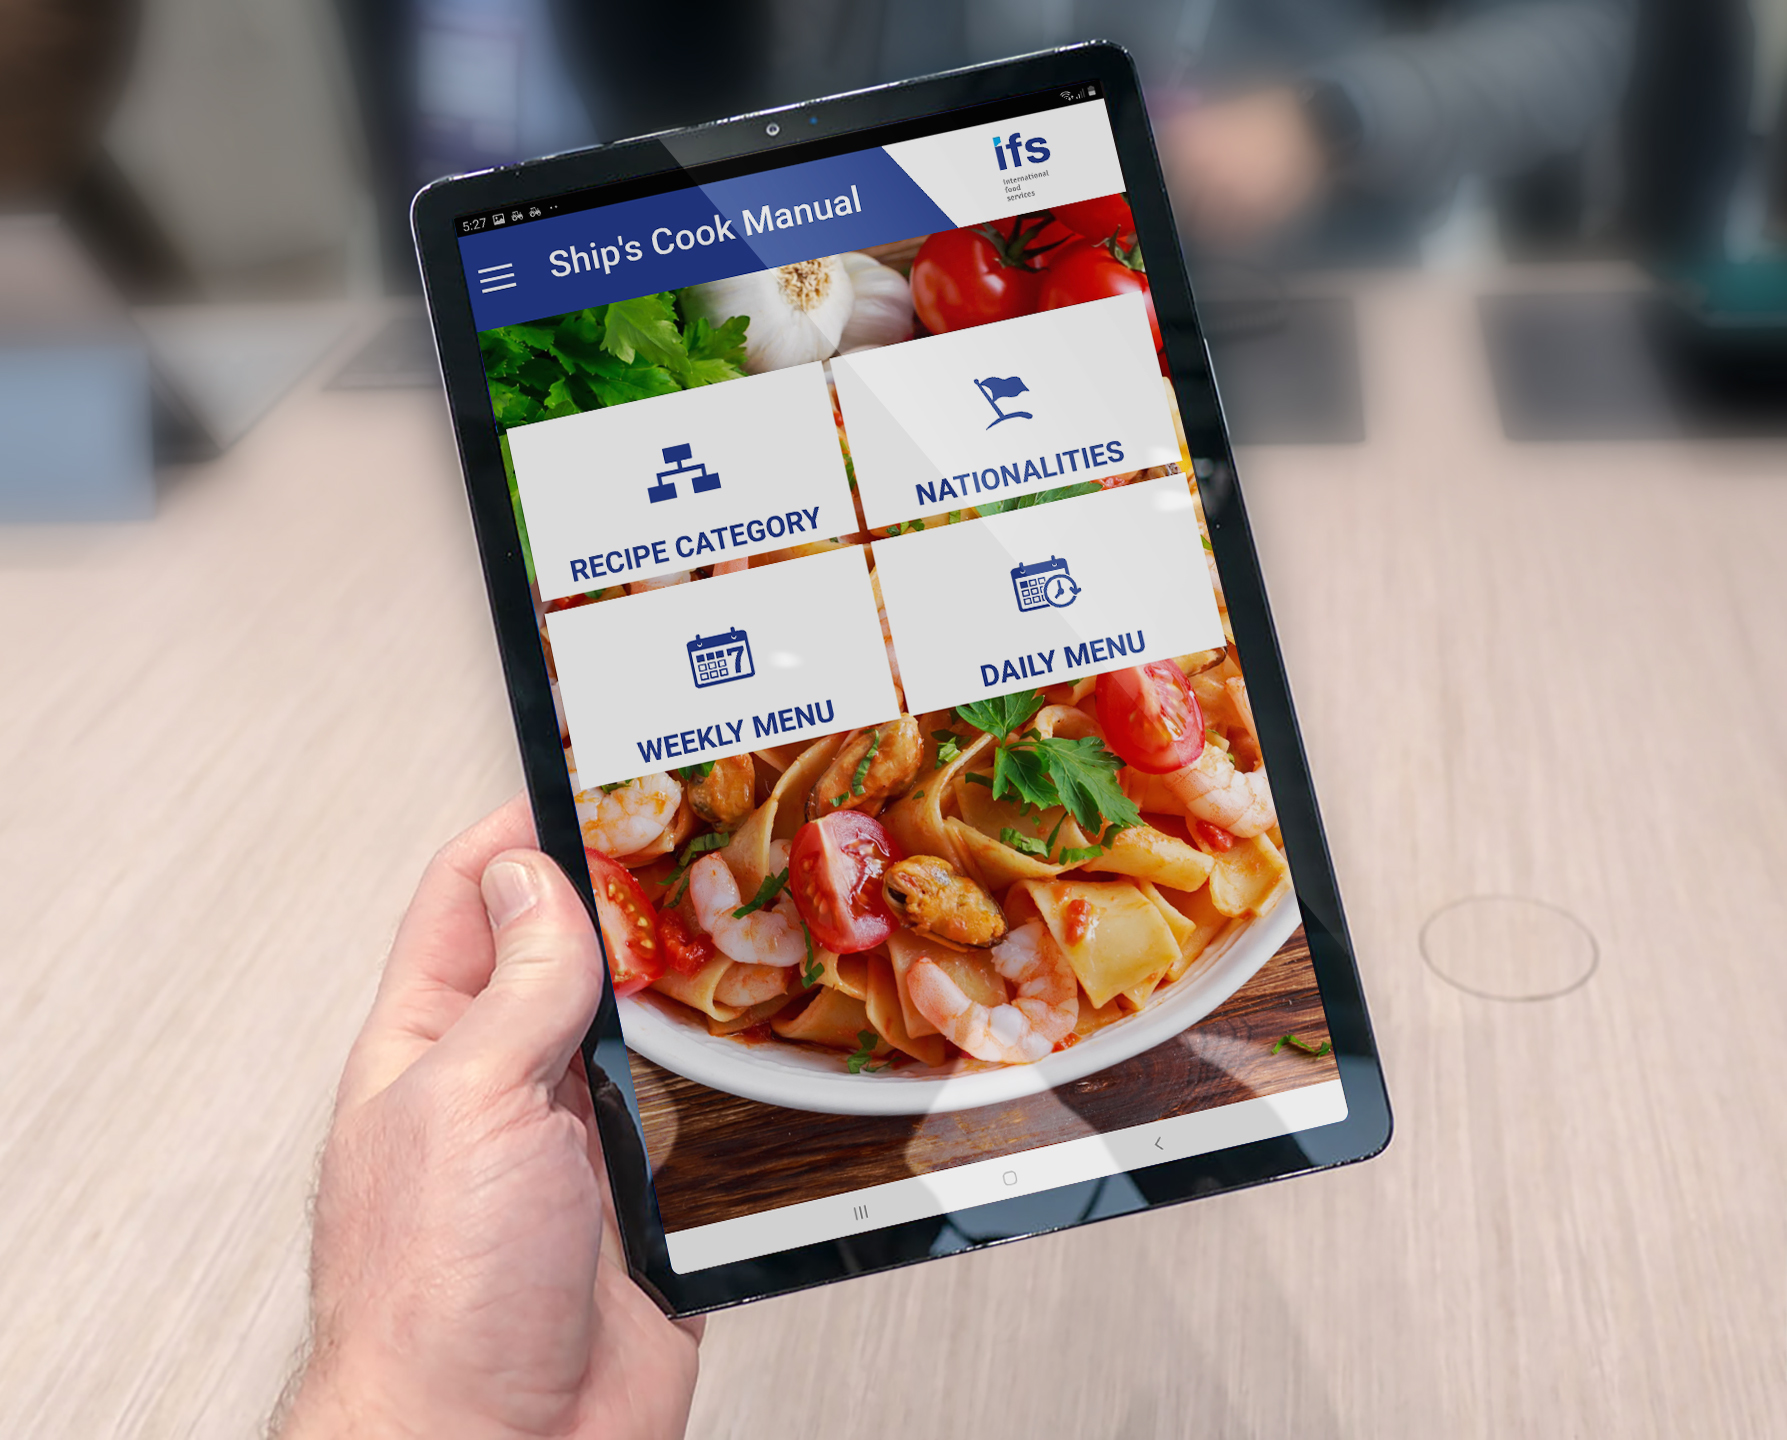 IFS cooking app